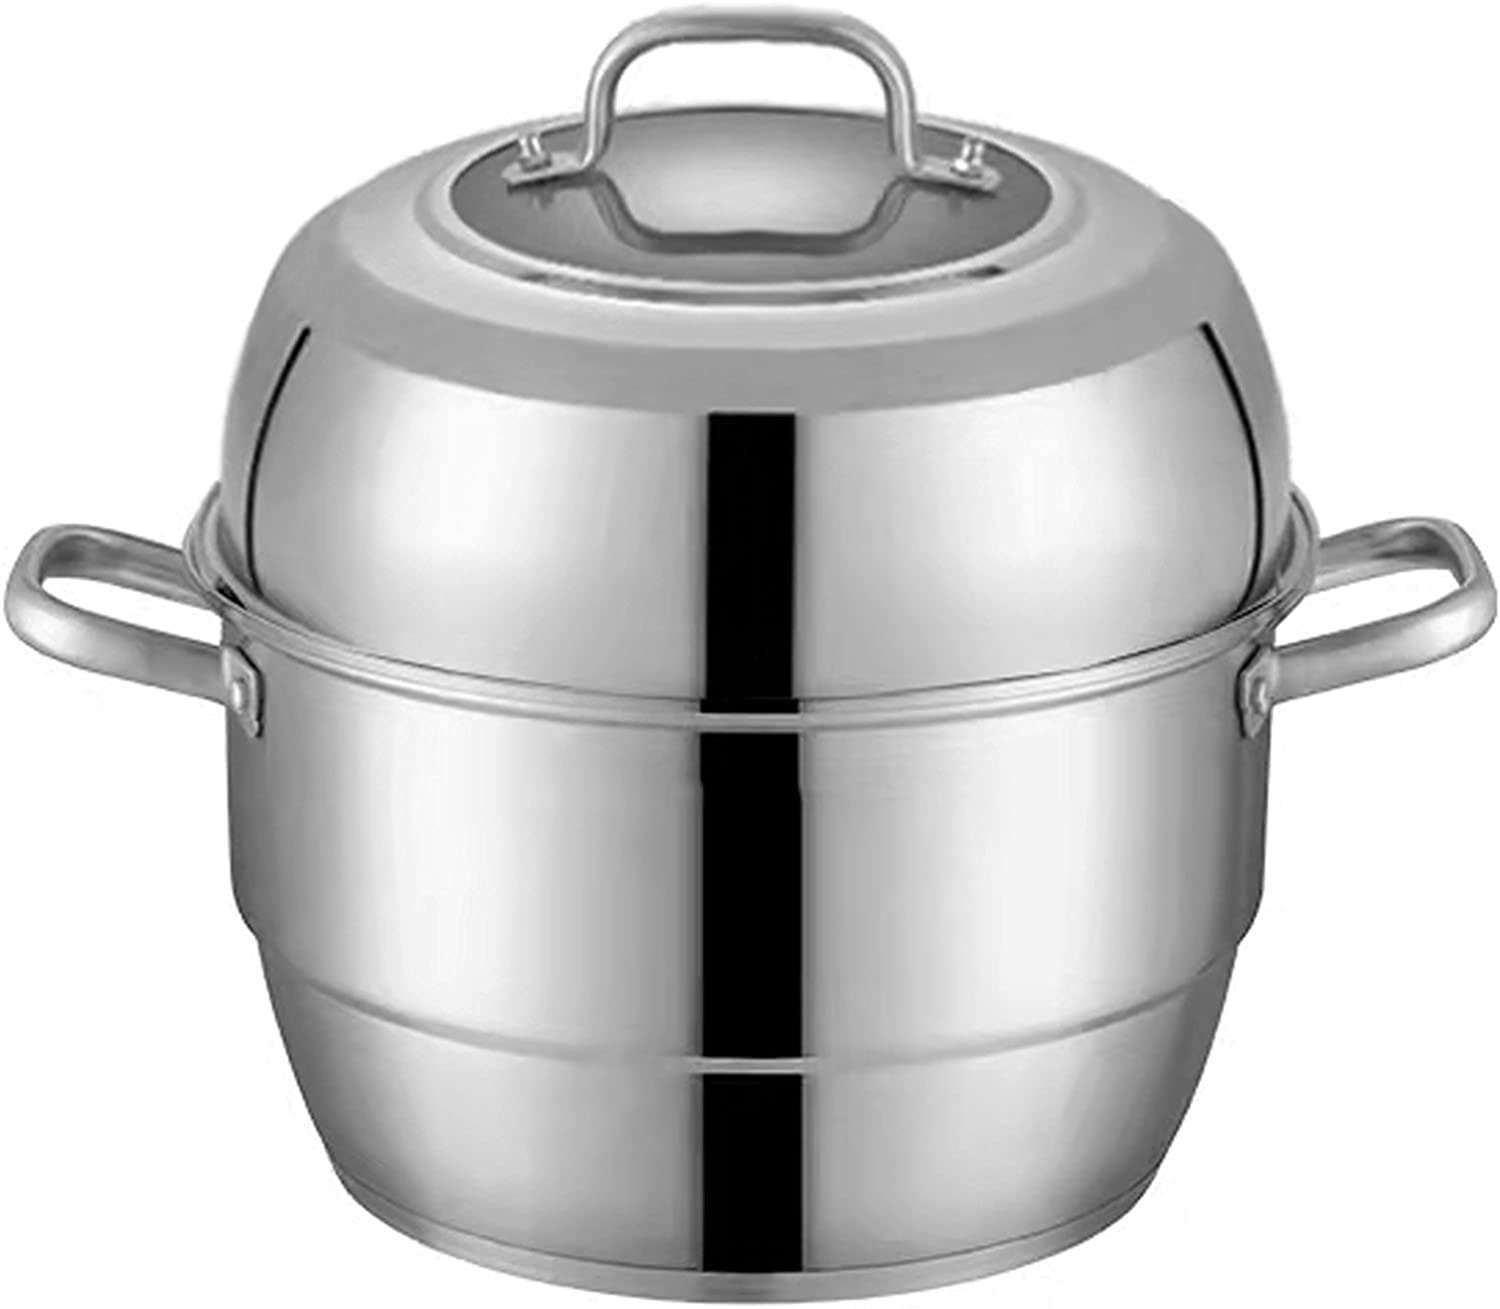 Stainless Steel Steamer 2-Tier Cooking Pot Max 81% OFF Double Layer A surprise price is realized